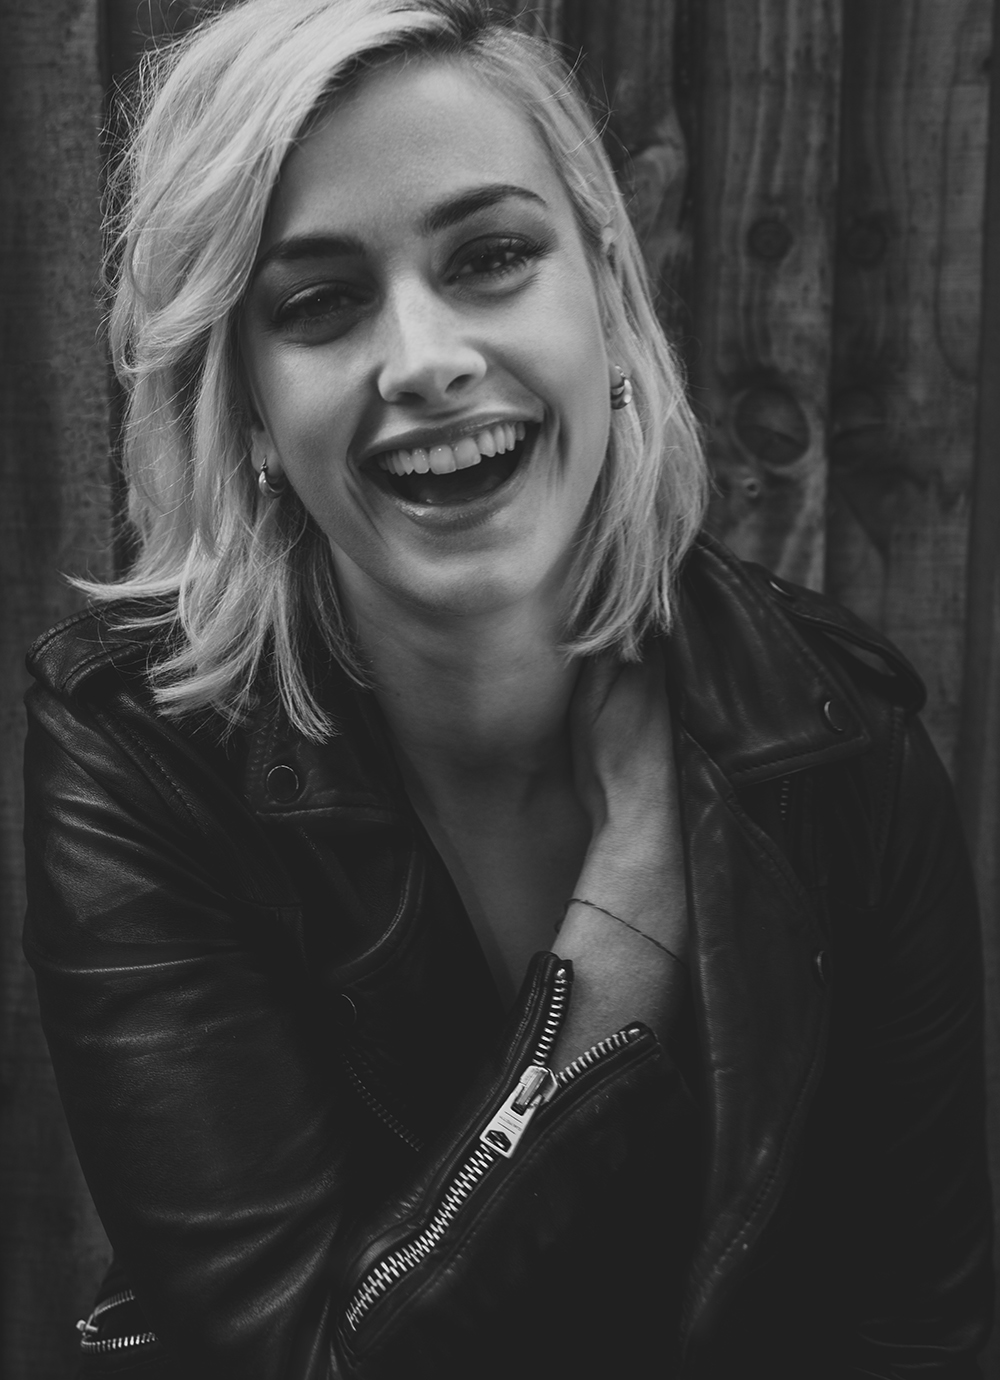 WILL BREMRIDGE - STEFANIE MARTINI 4.jpg